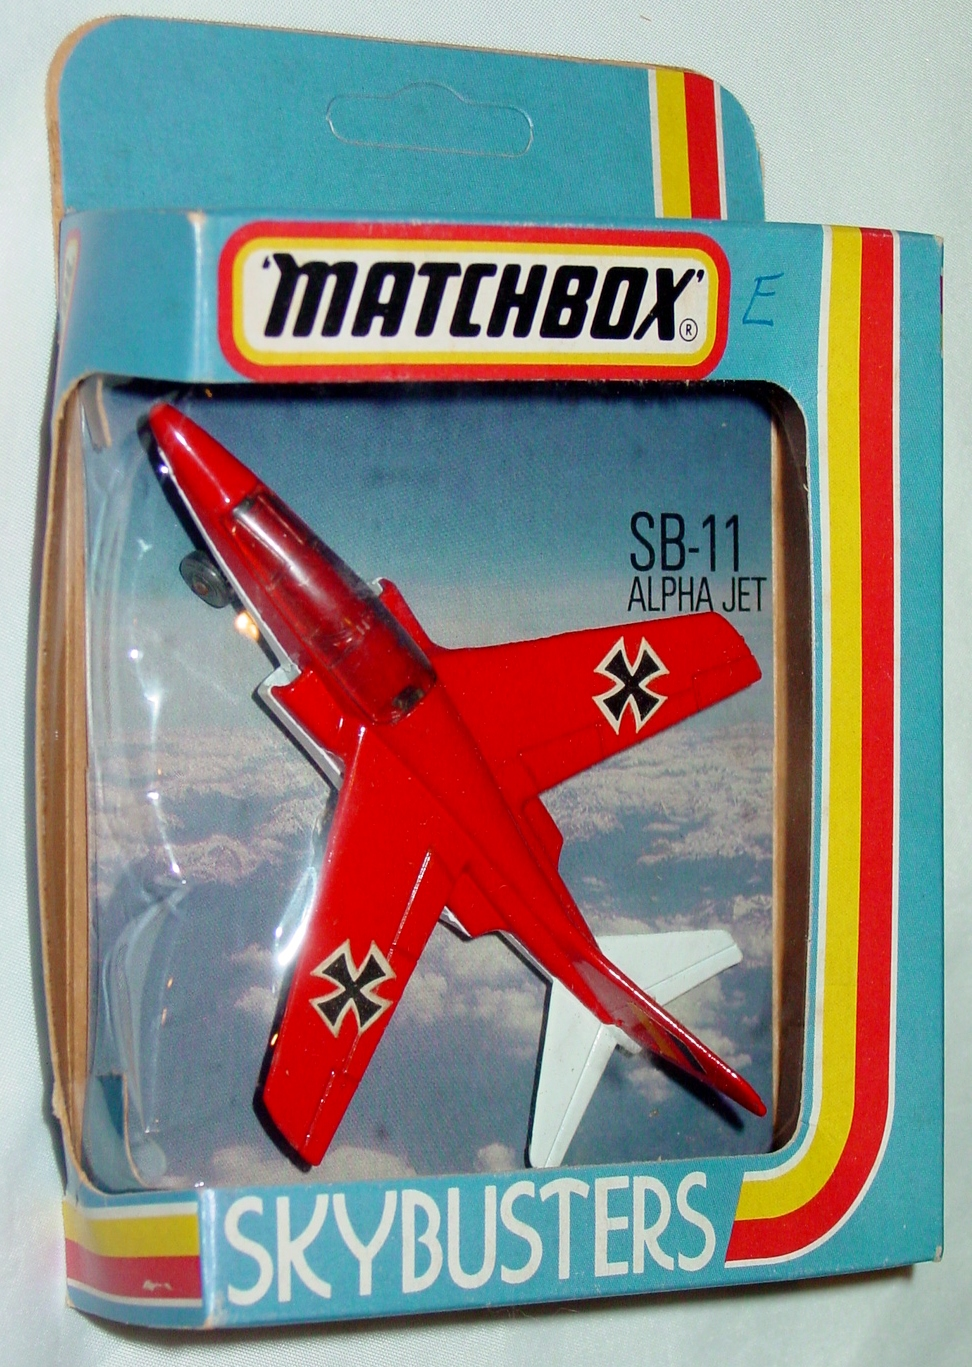 Sky Buster 11 A 2 - Alpha Jet met Red thick axles ENGLAND C8.5 box